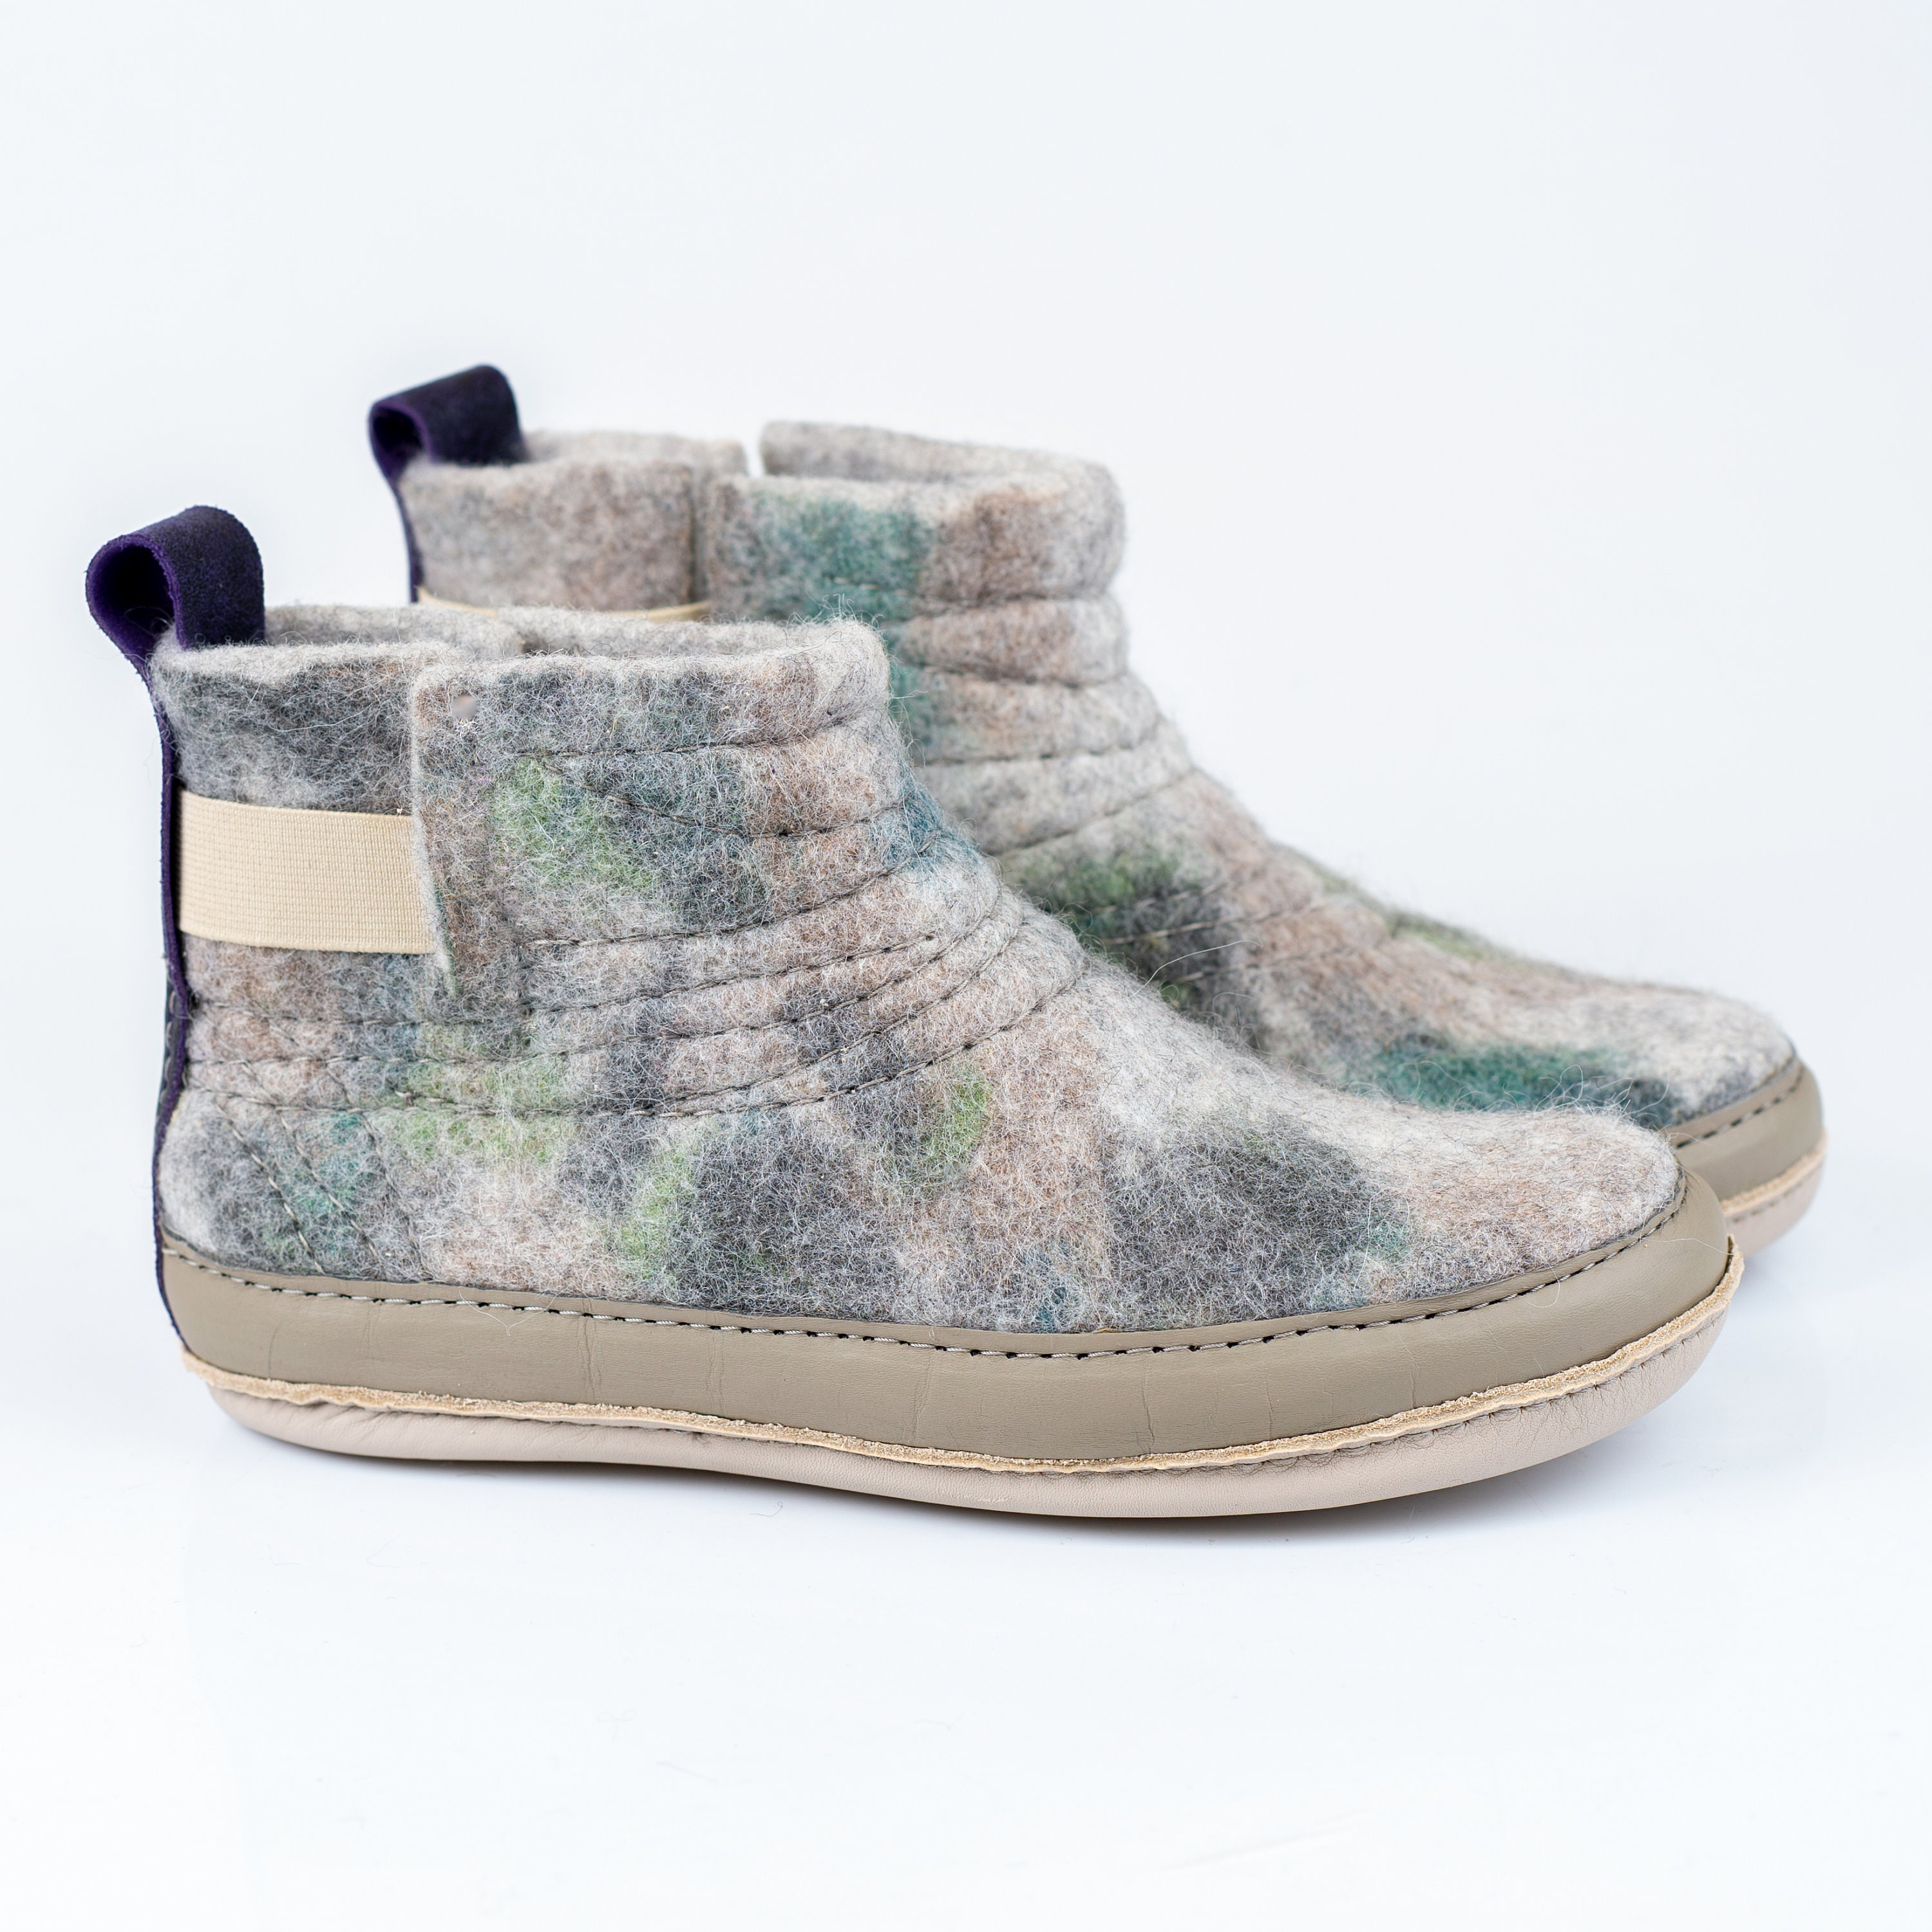 983c284047671 READY TO SHIP womens size 10 wooboot warm wool ankle booties with ...